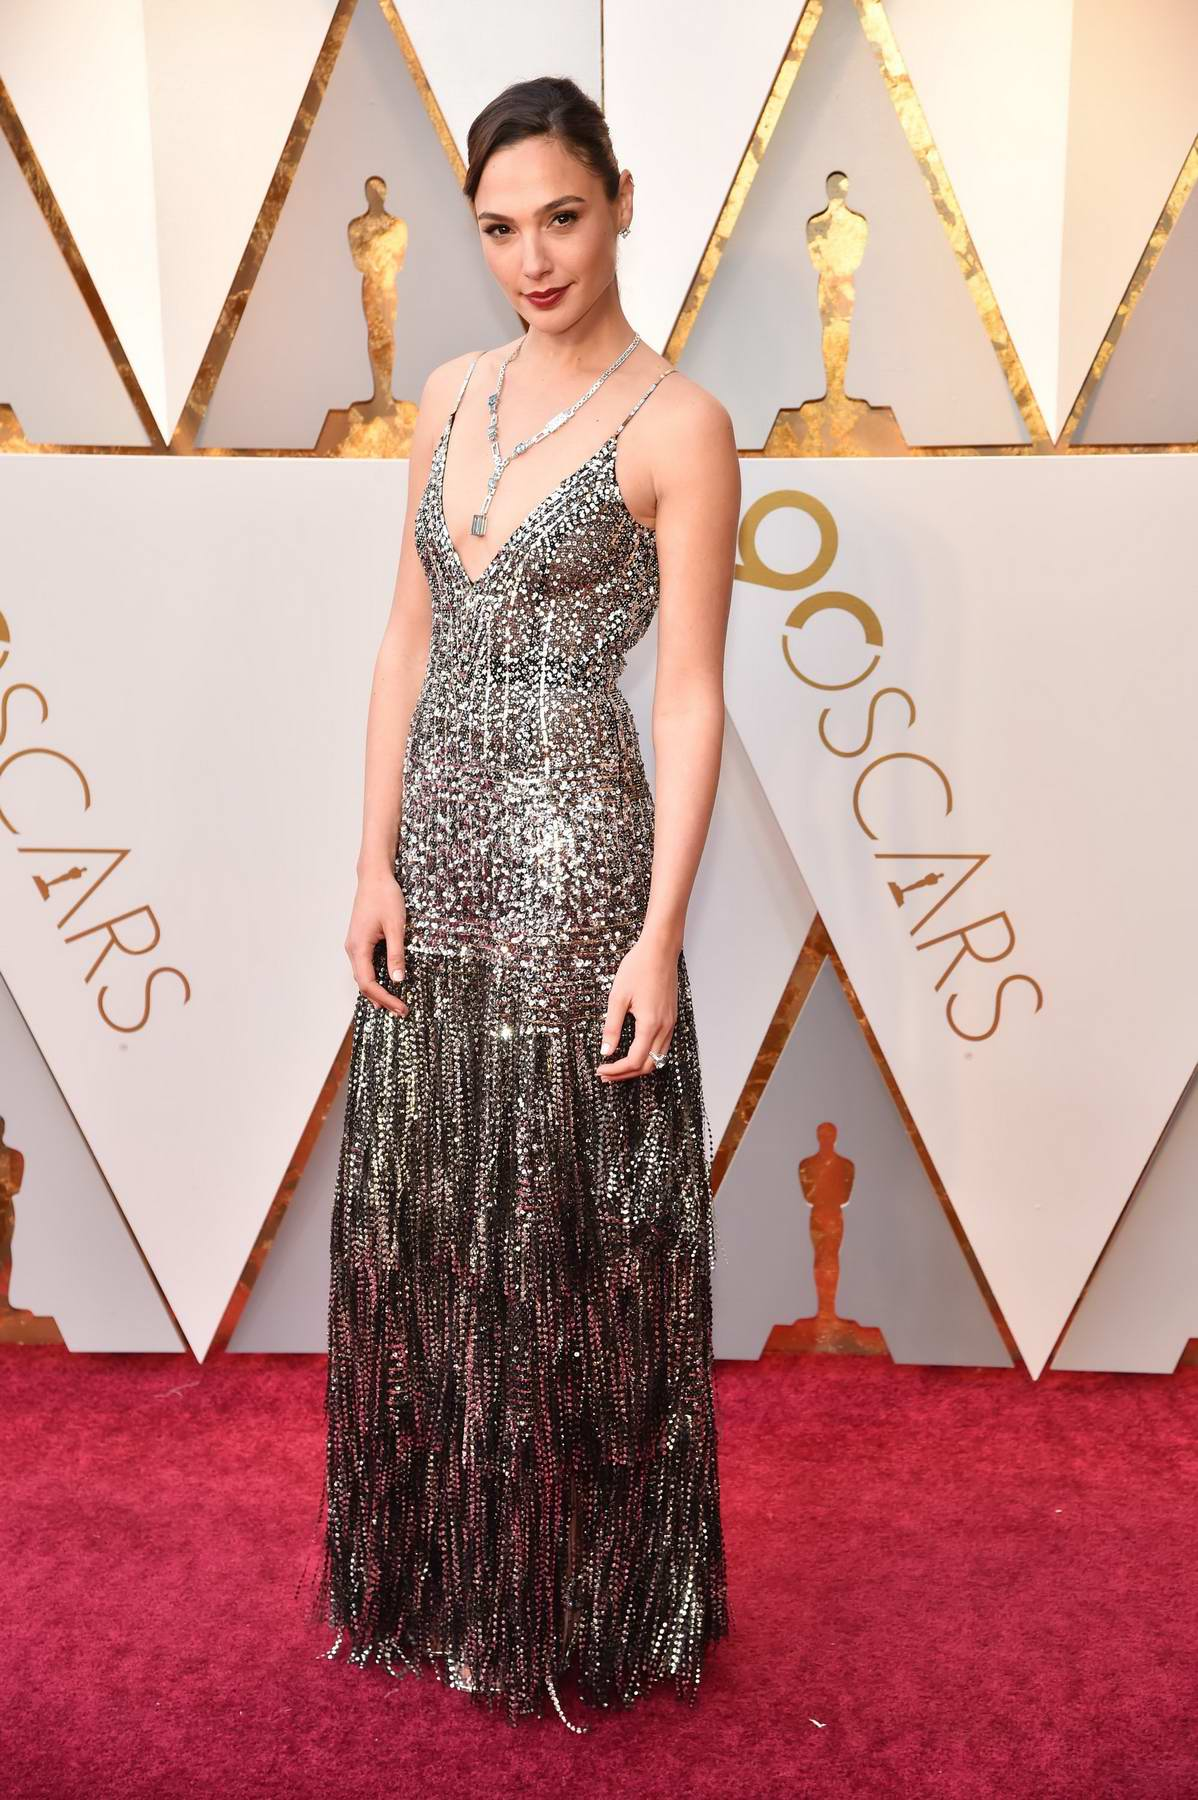 Gal Gadot attends The 90th Annual Academy Awards (Oscars 2018) held at Dolby Theatre in Hollywood, Los Angeles